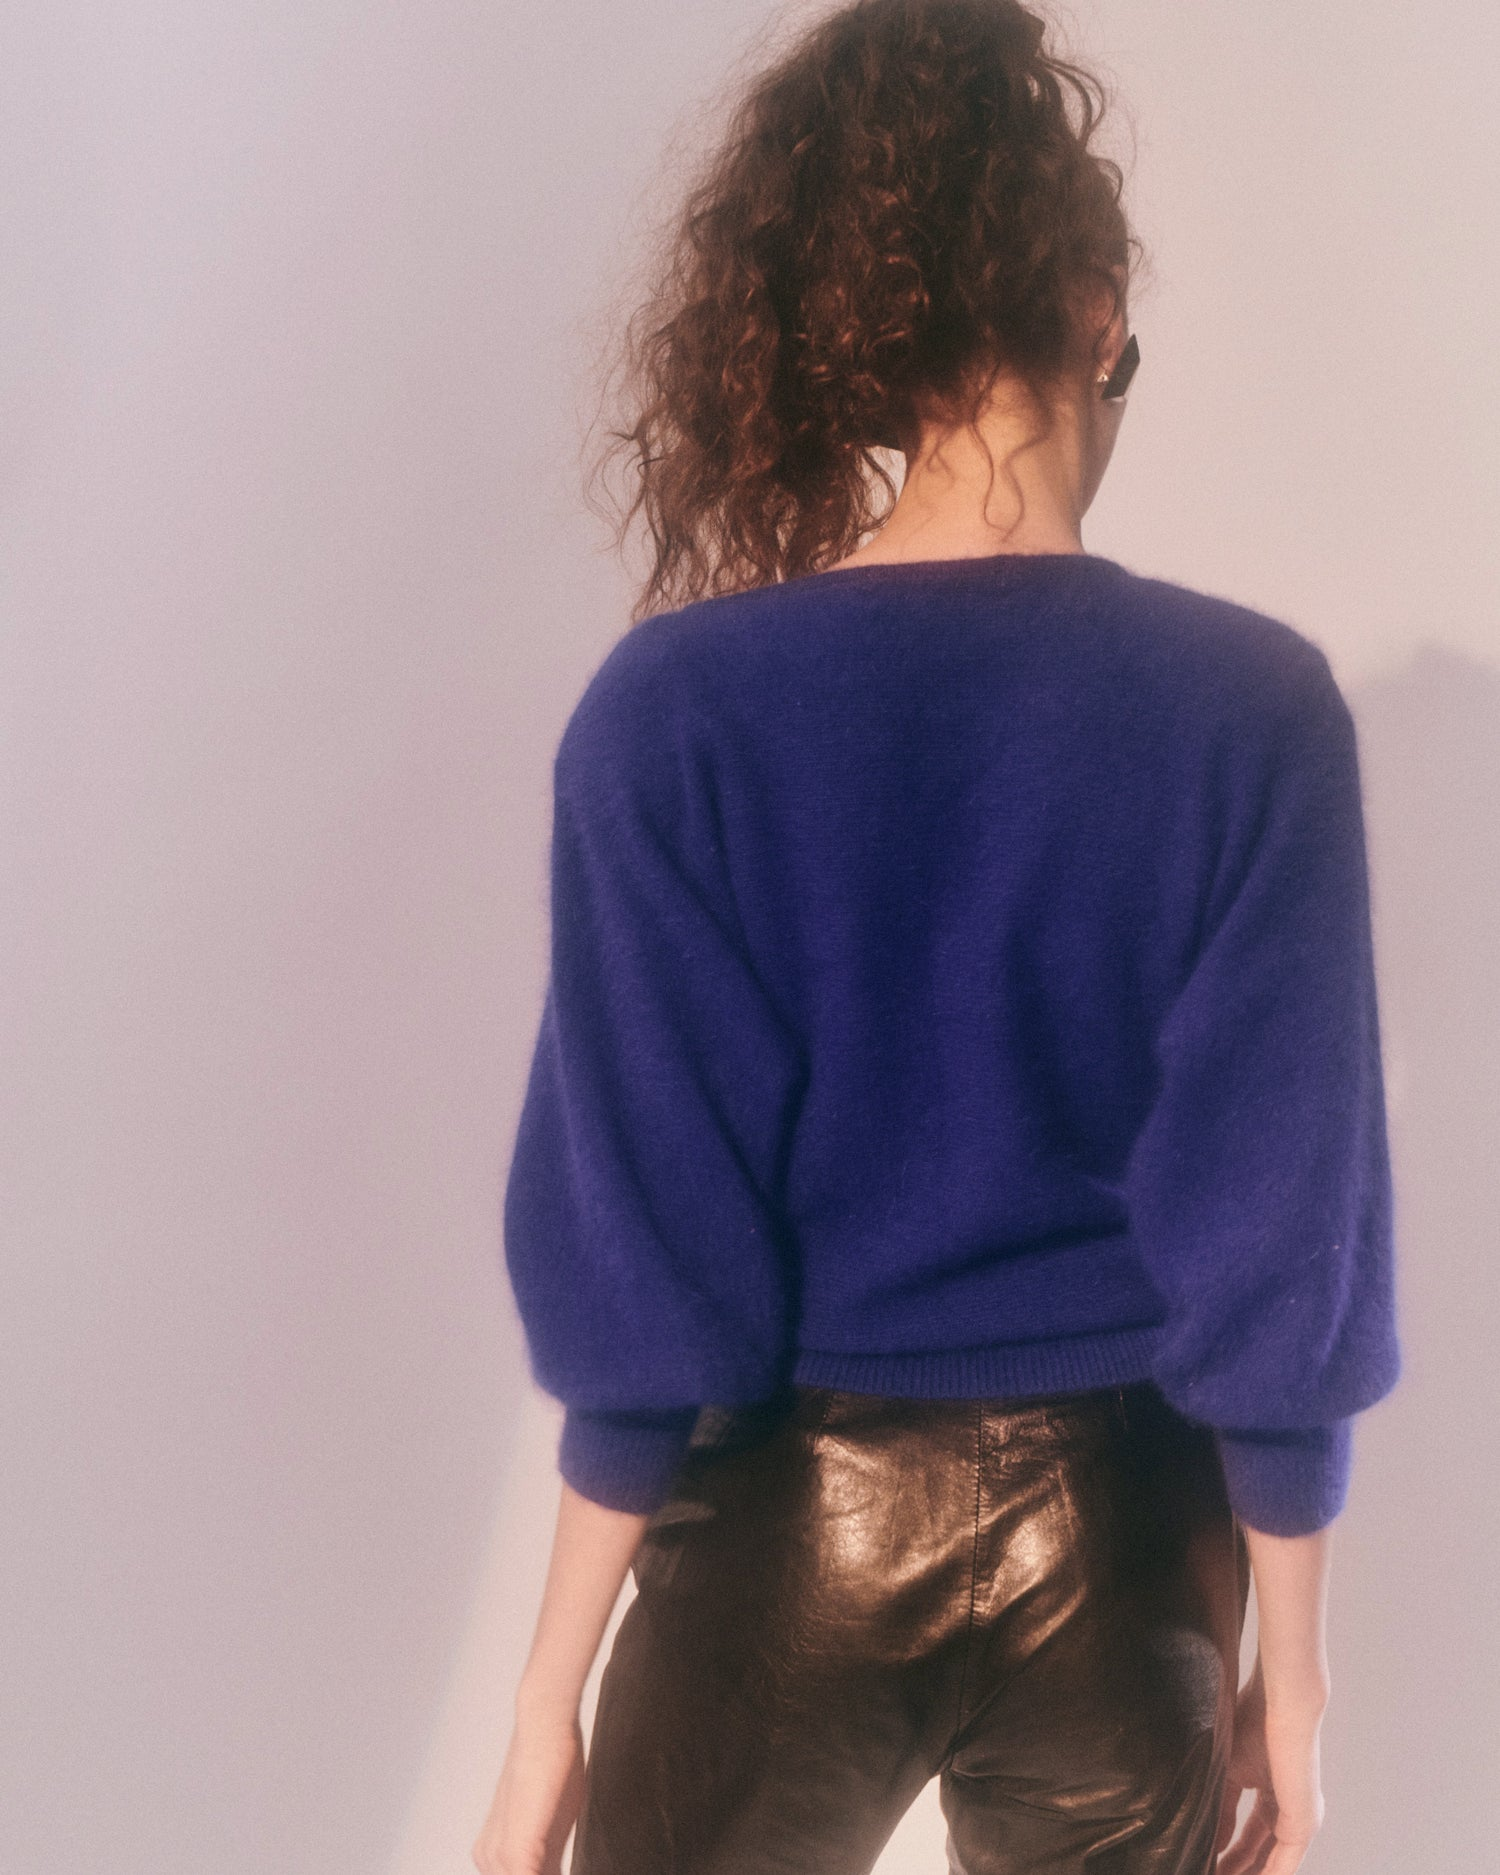 Blue Monday // Leather & Rhinestone Angora sweater